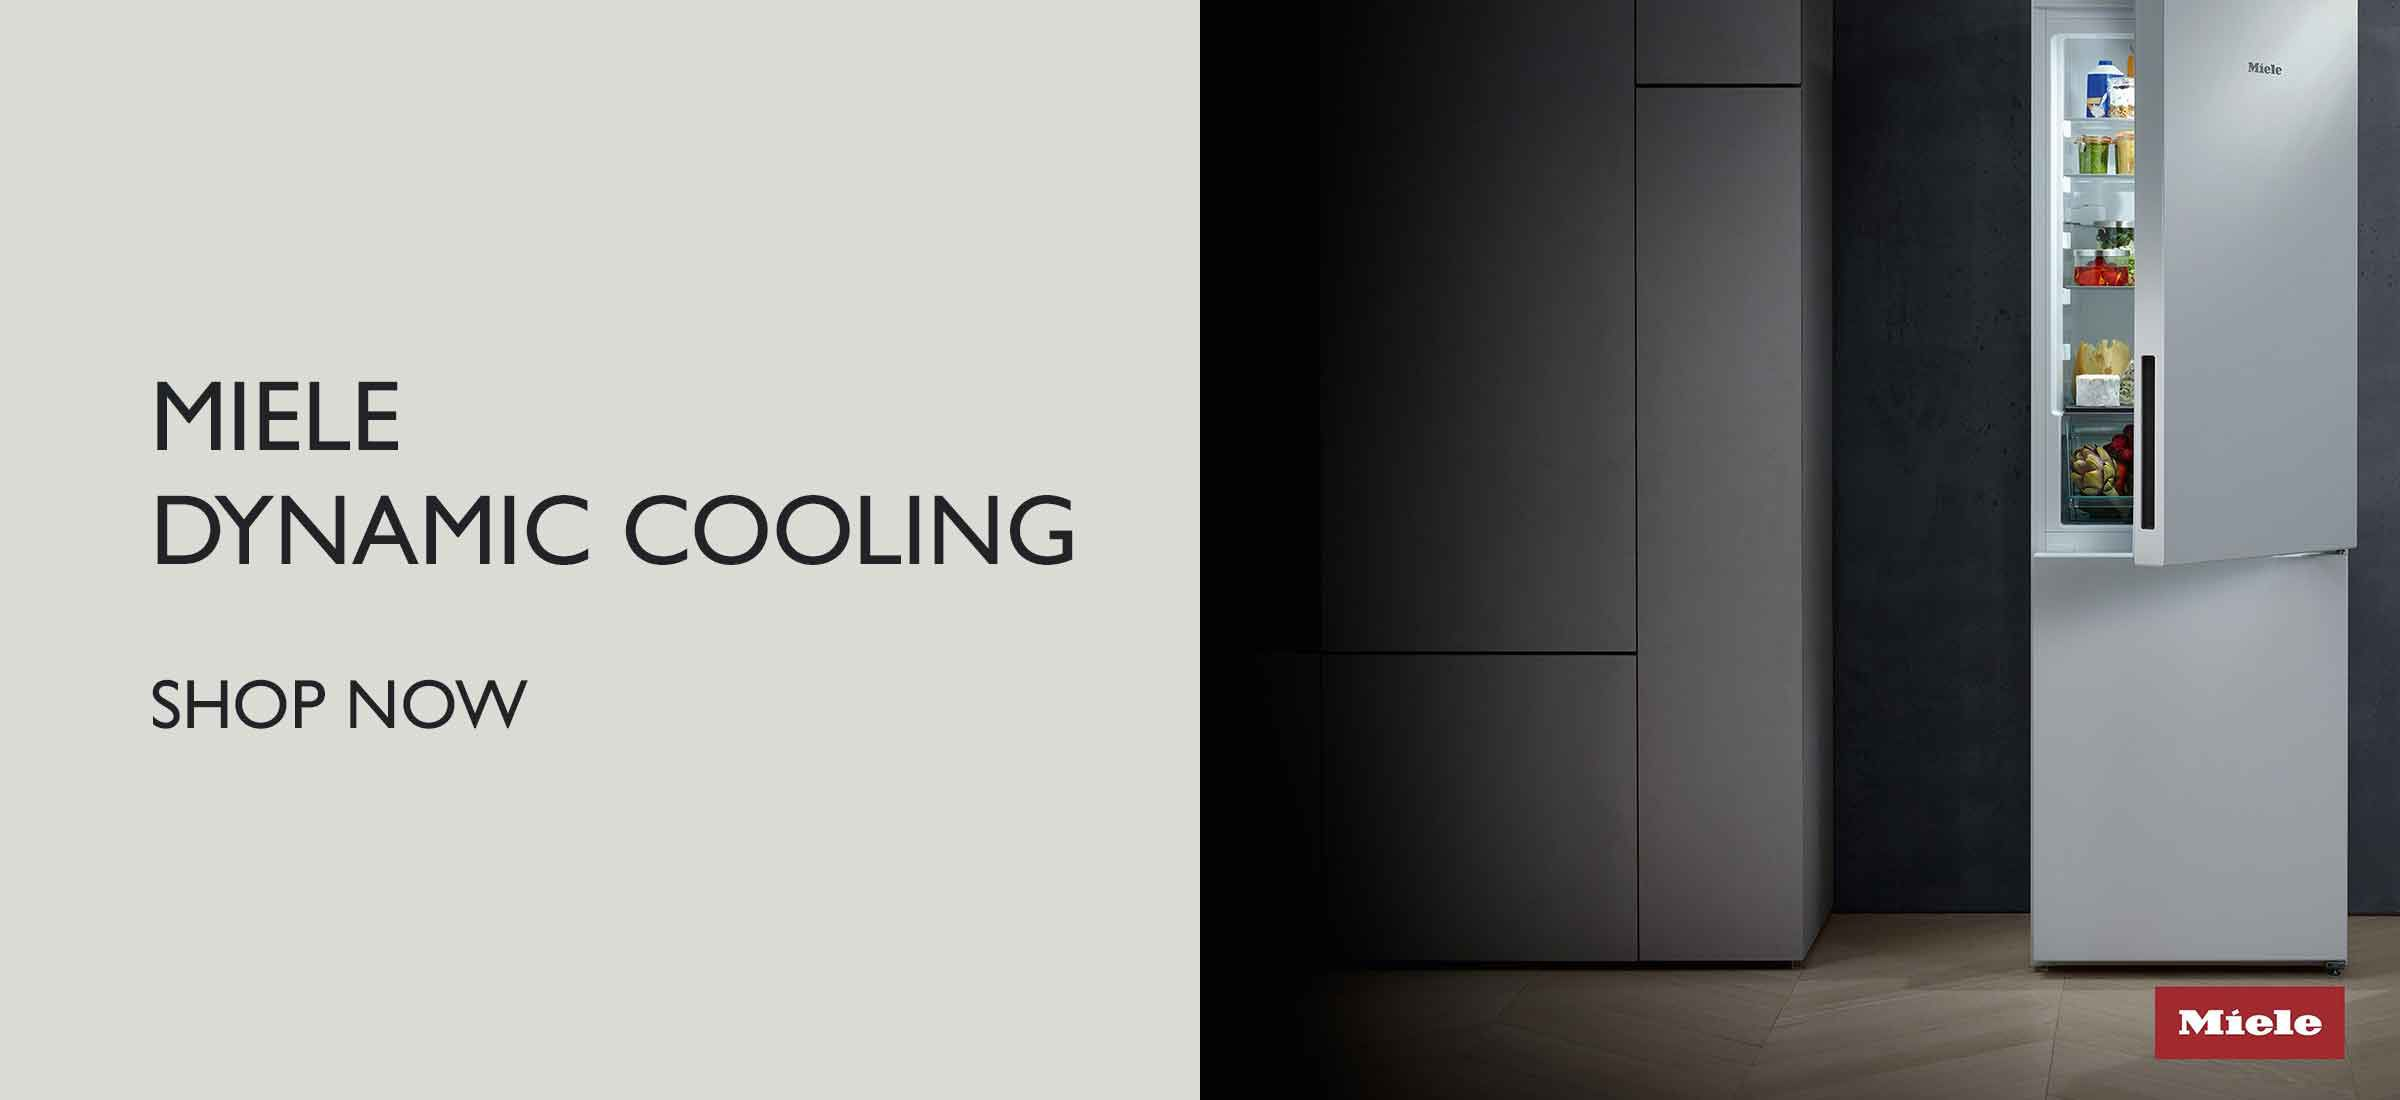 MIELE DYNAMIC COOLING